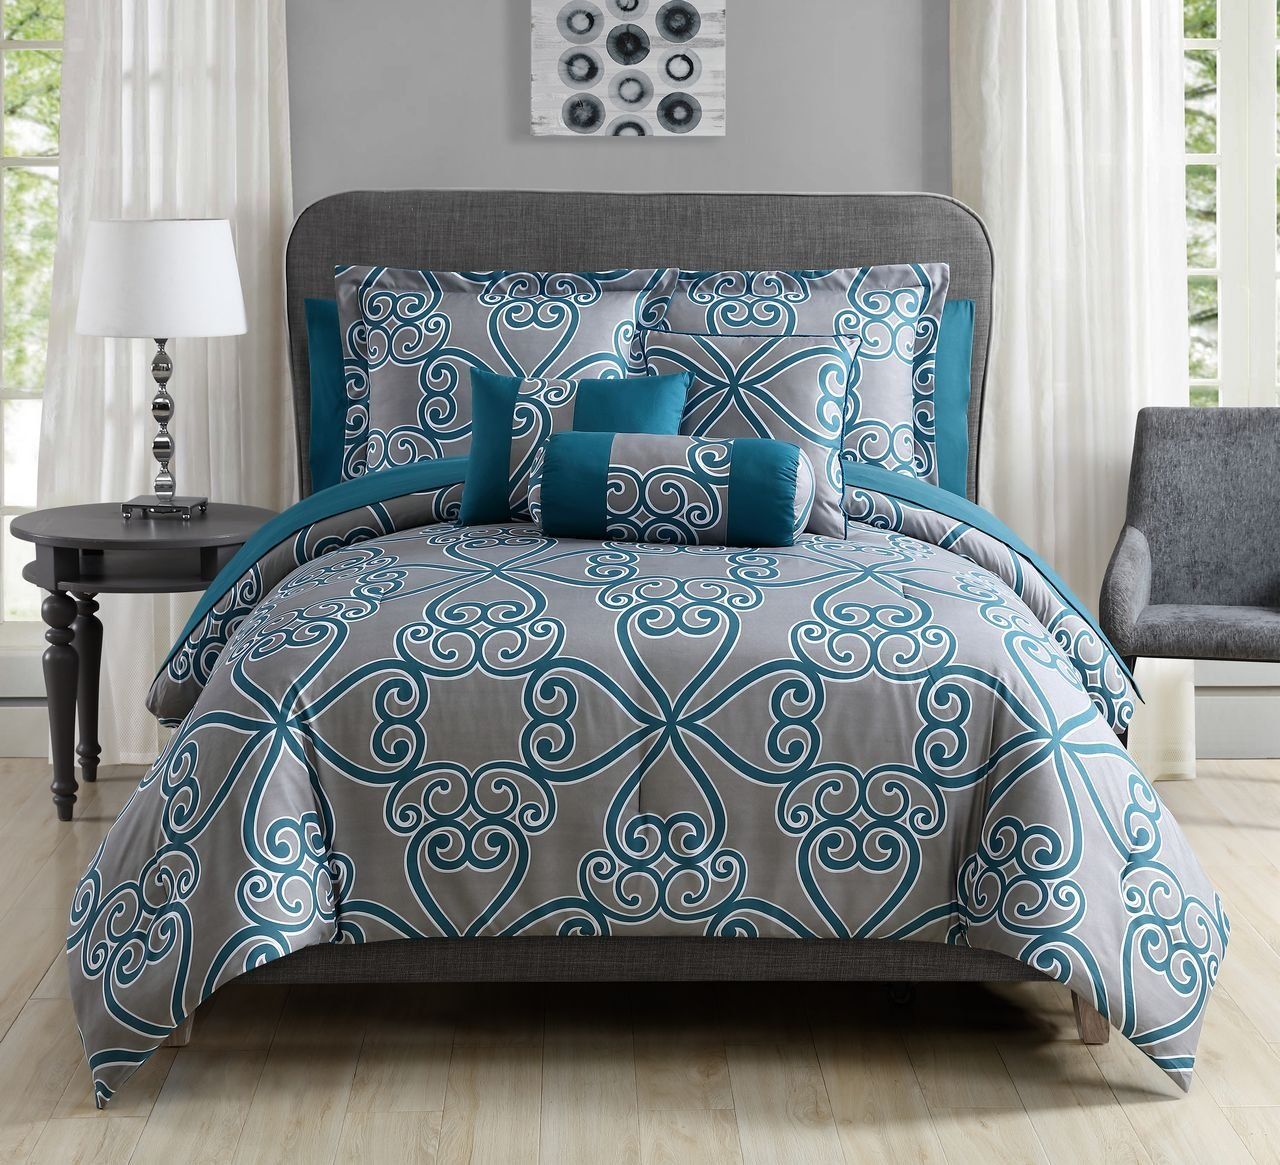 queen sets single duvet home covers cobalt popular cover quilt coverlet bedspreads navy teal bedding light comforter blue b bed quilts